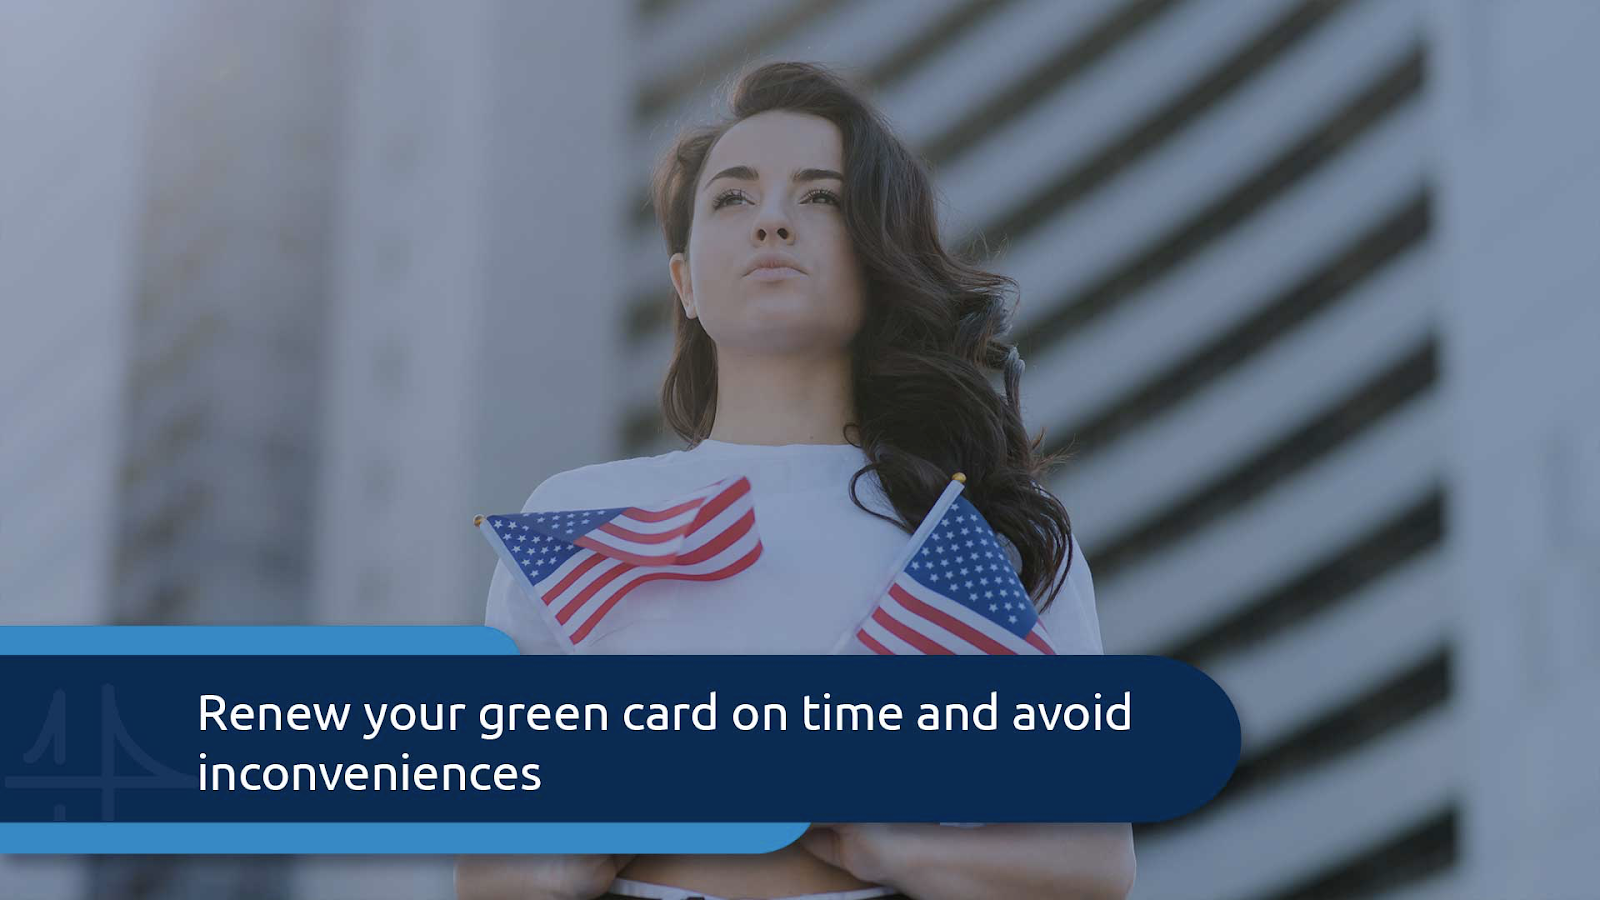 My Green Card Expired, what happens now?